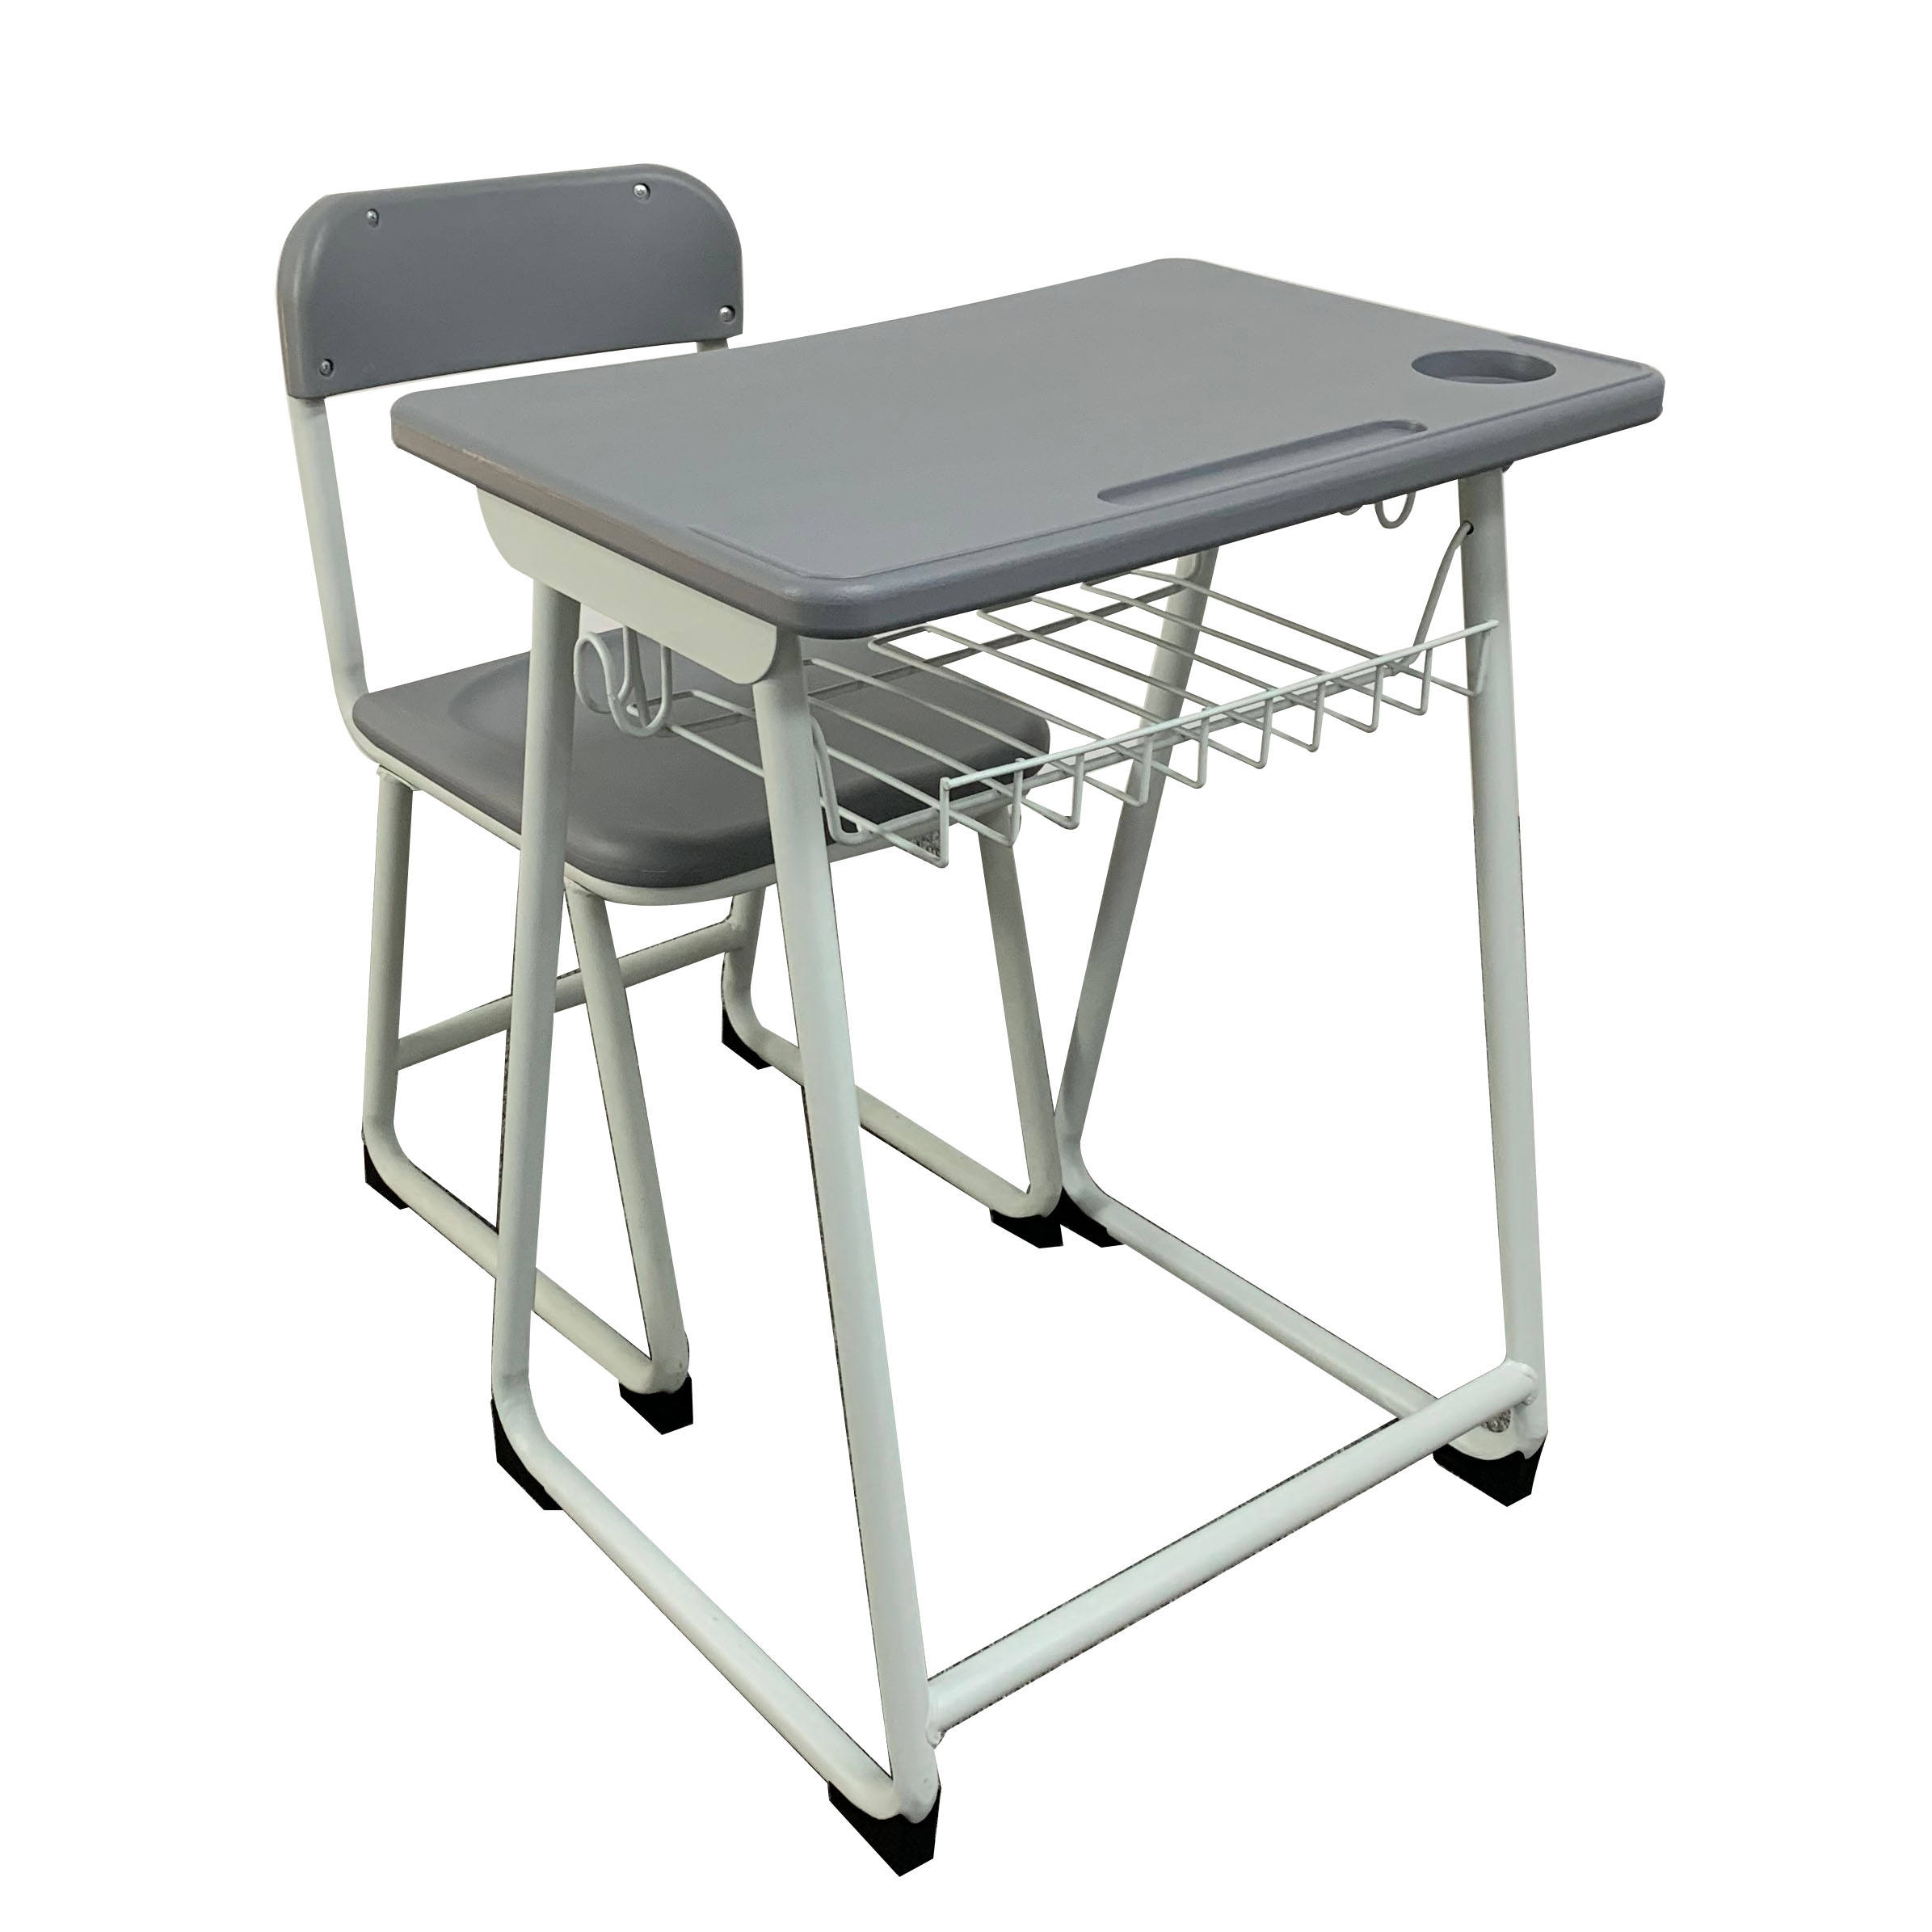 modern school student shelf desk and chair set metal student furniture